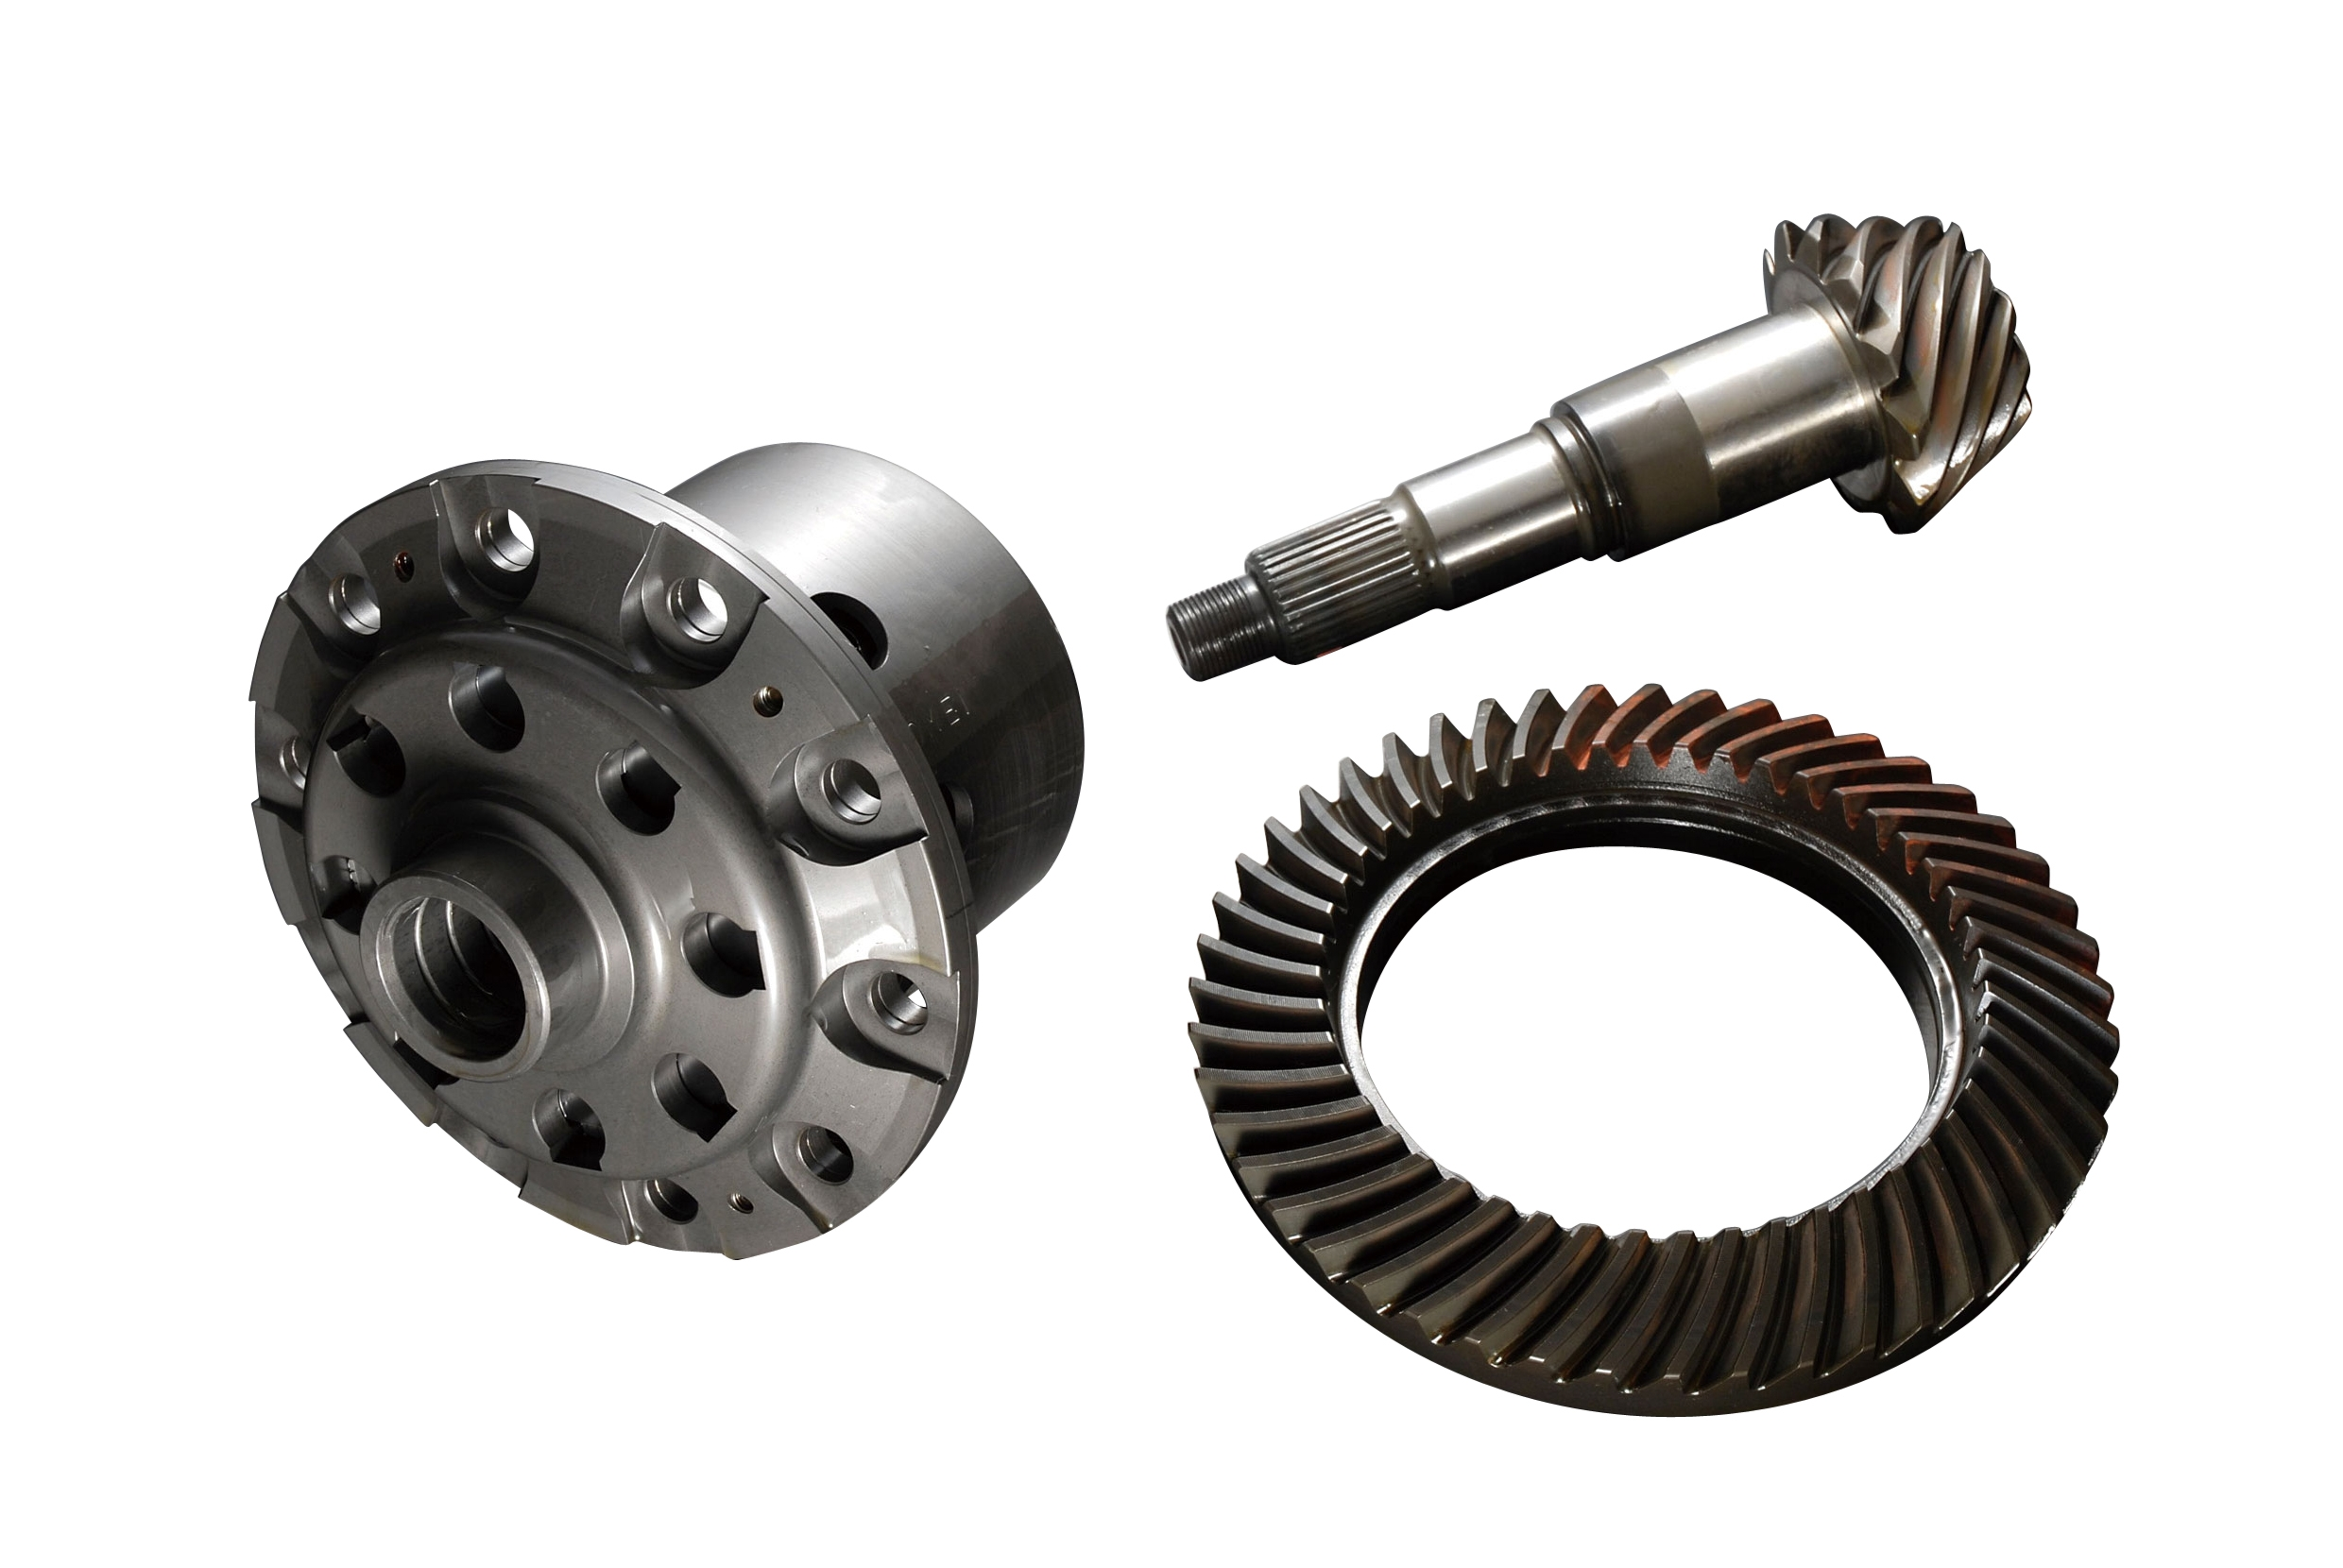 Tomei Technical Trax Advance 1.5-Way HA1 Prokit LSD w/ 3.9 Final Gear Kit, Manual Transmission MT - Nissan V35, Z33, Z34